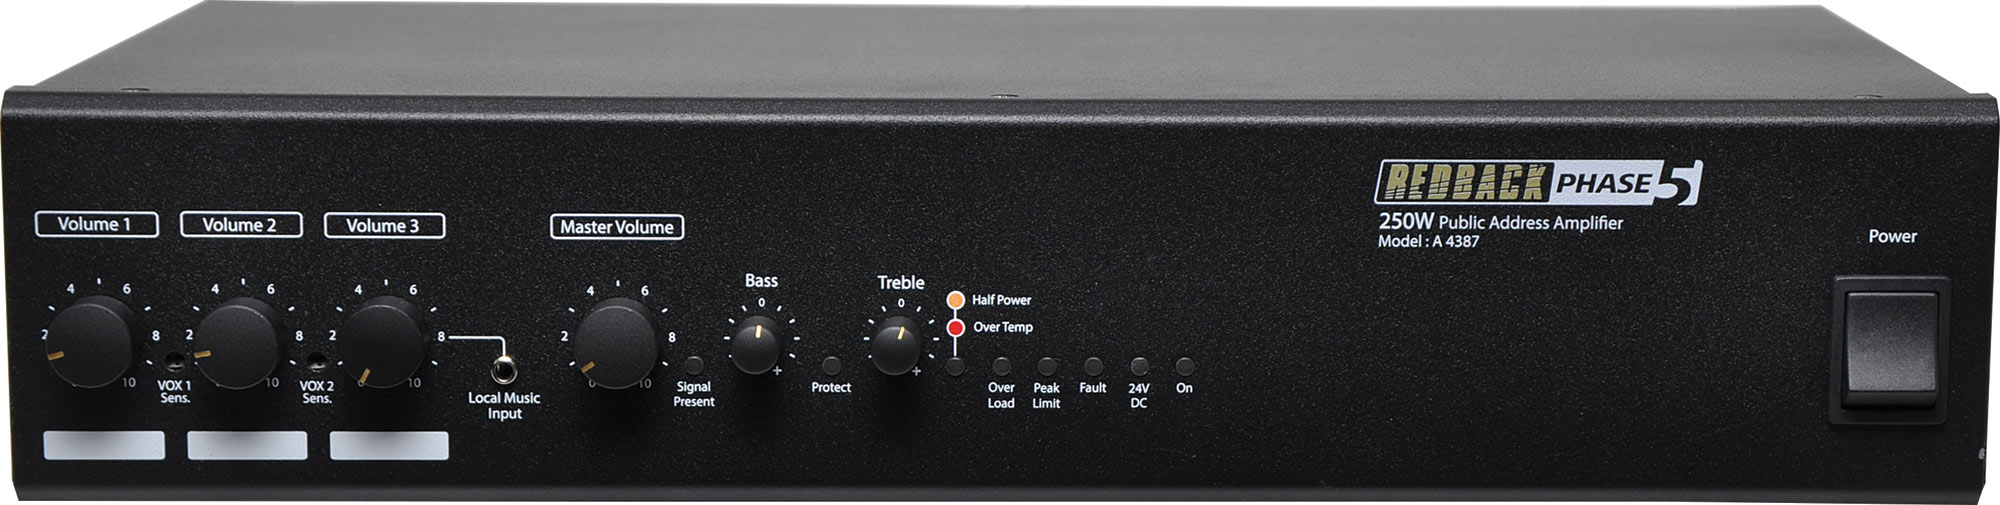 Redback Phase 5 Public Address PA Amplifier 250W 4 Input